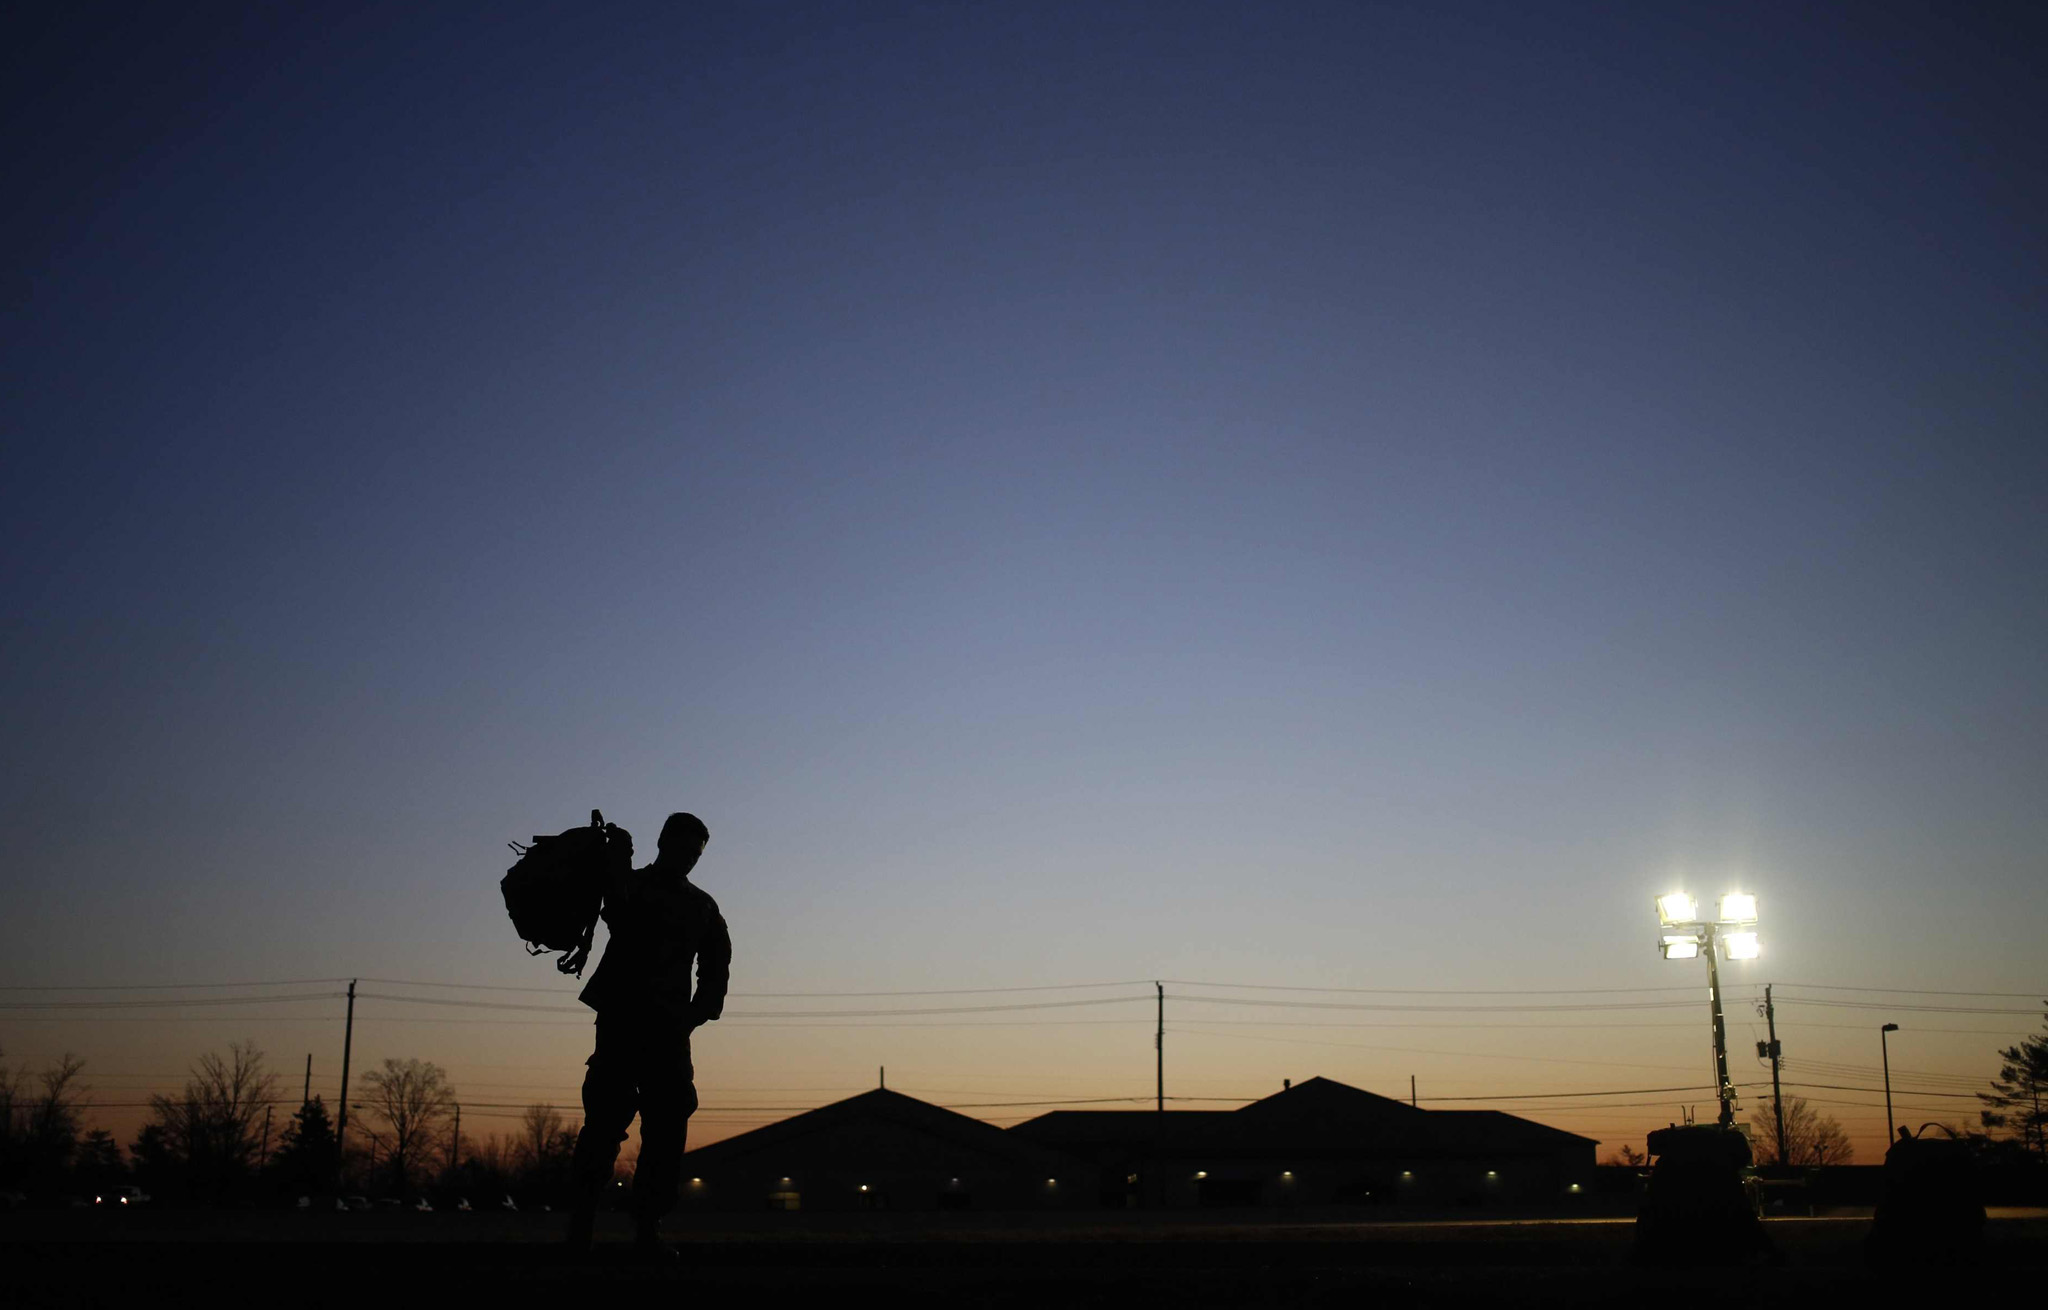 A soldier from the U.S. Army's 3rd Brigade Combat Team, 1st Infantry Division, grabs his rucksack following a homecoming ceremony in the Natcher Physical Fitness Center, Fort Knox, Kentucky. About 100 soldiers returned to Fort Knox after a nine-month combat deployment conducting village stability operations and working alongside Afghan military and police forces.